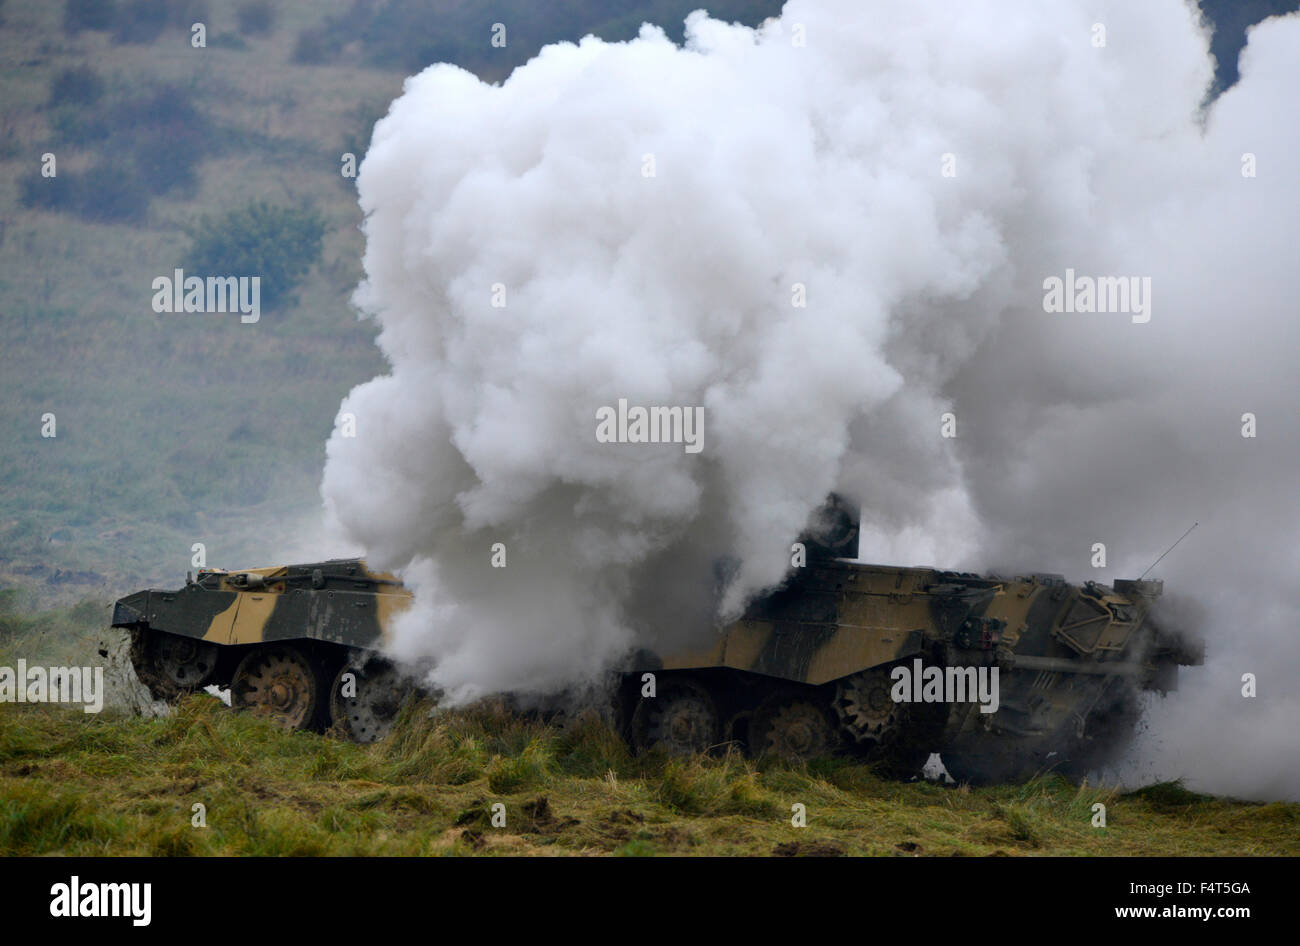 British Army Fire Power demonstration on Salisbury Plain. Challenger tank makes smoke to make a tactical withdraw - Stock Image